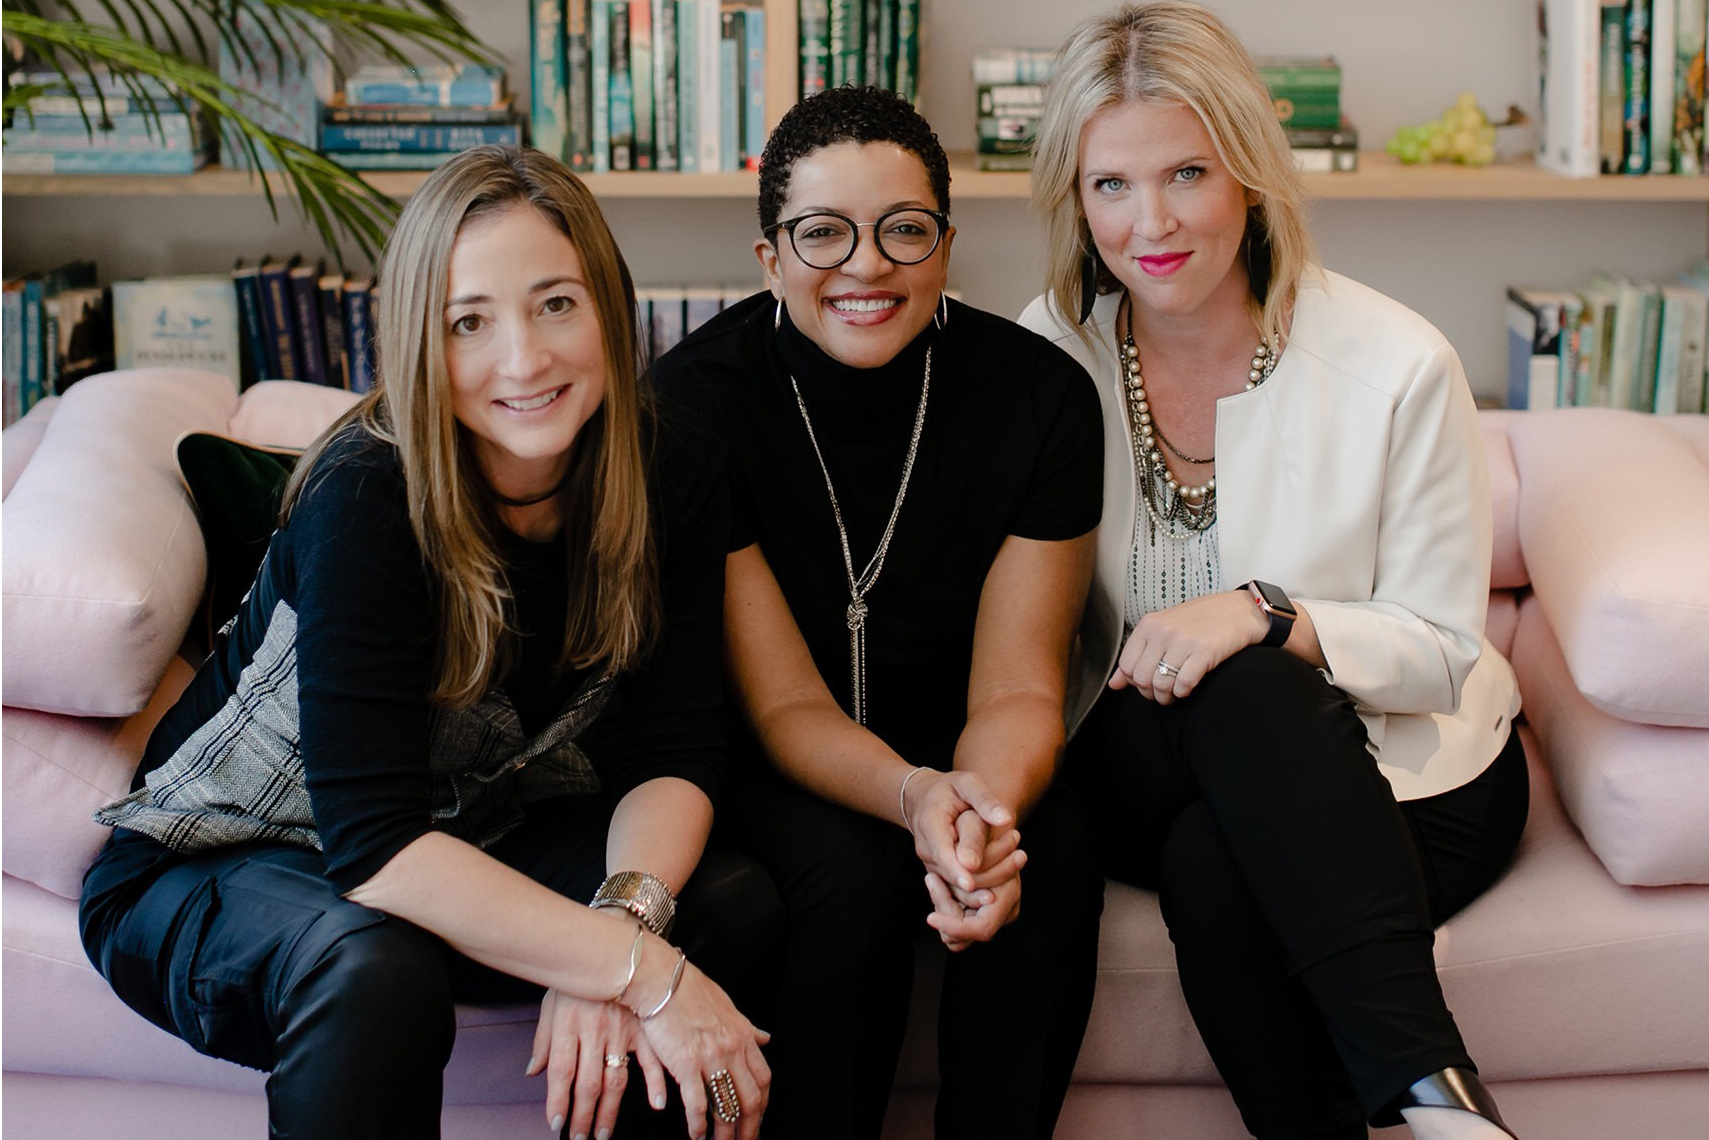 Golin's 'Have Her Back' campaign is morphing into a female-owned consultancy